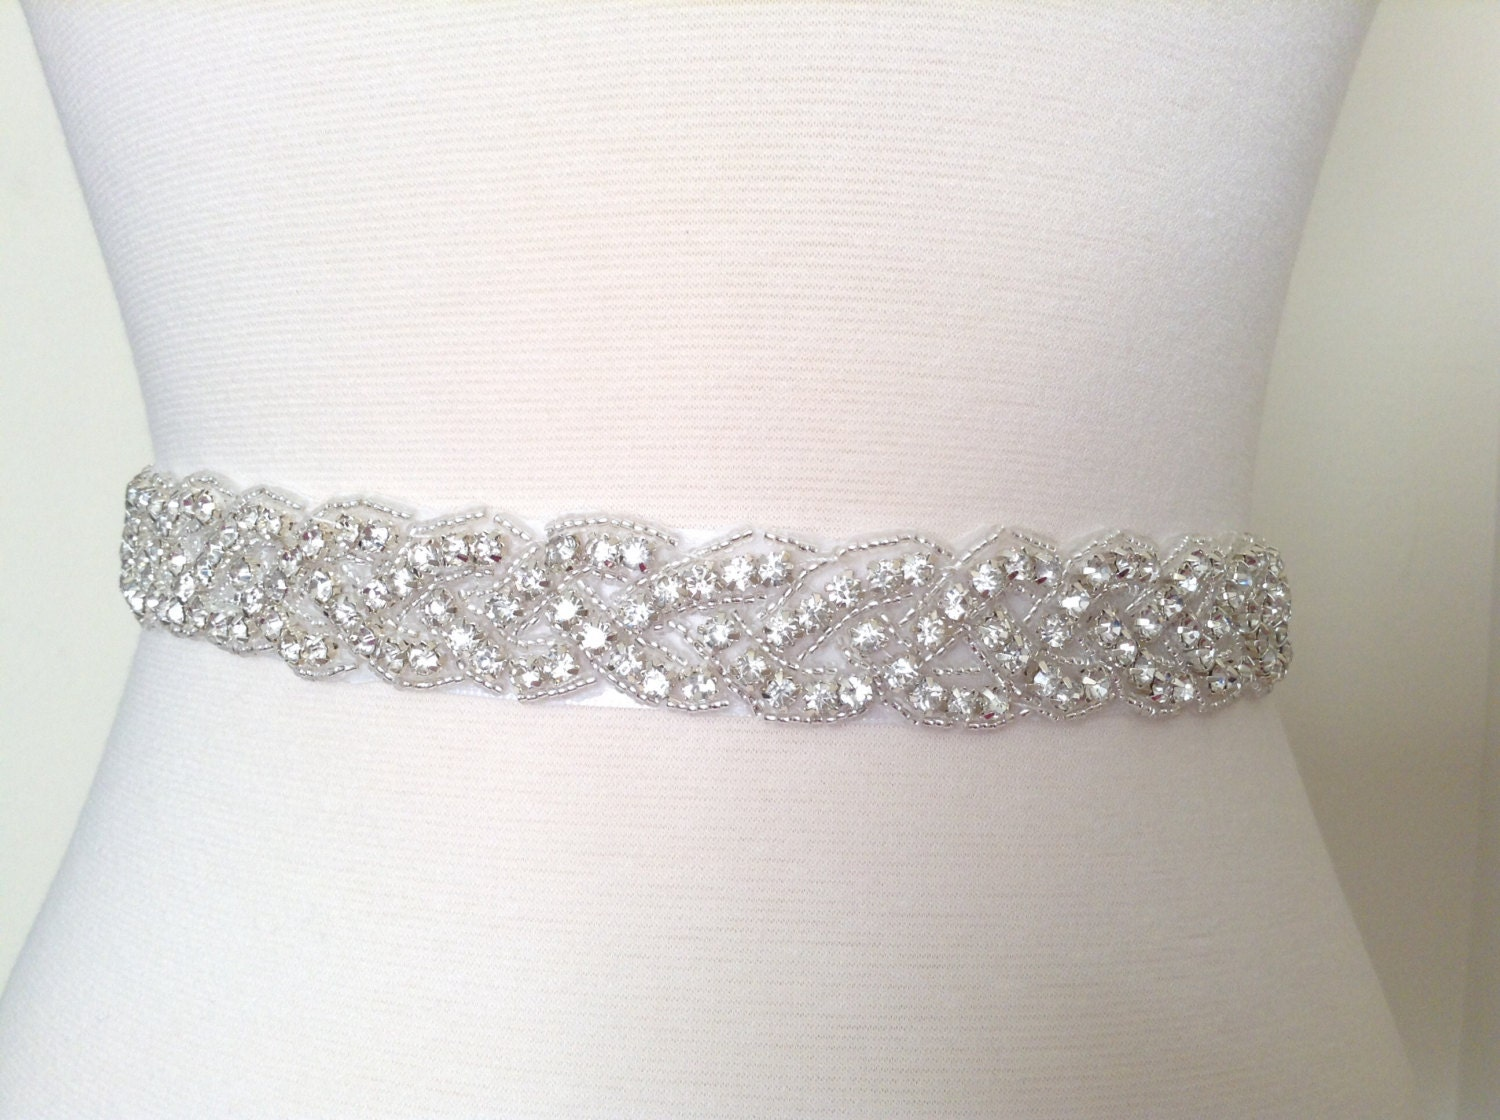 Bridal sash bridal belt wedding dress sash rhinestone sash for Wedding dress sash with rhinestones